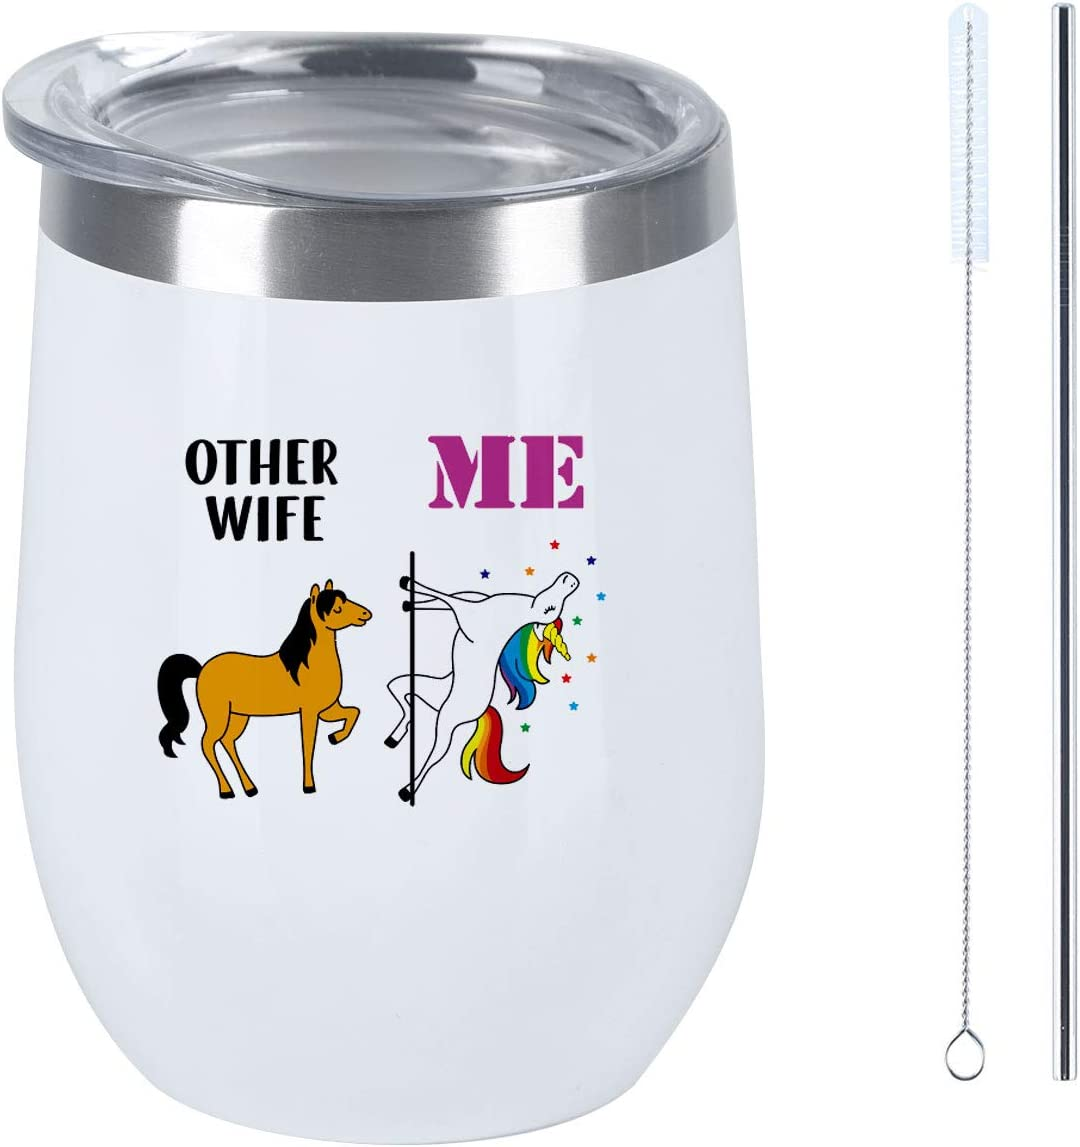 Valentine's Day Gift for Wife Wine Tumbler,Other Wife Me Wine Tumbler, Funny Birthday Gift for Wife Wifey Her Women, 12 Oz Insulated Stainless Steel Wine Tumbler